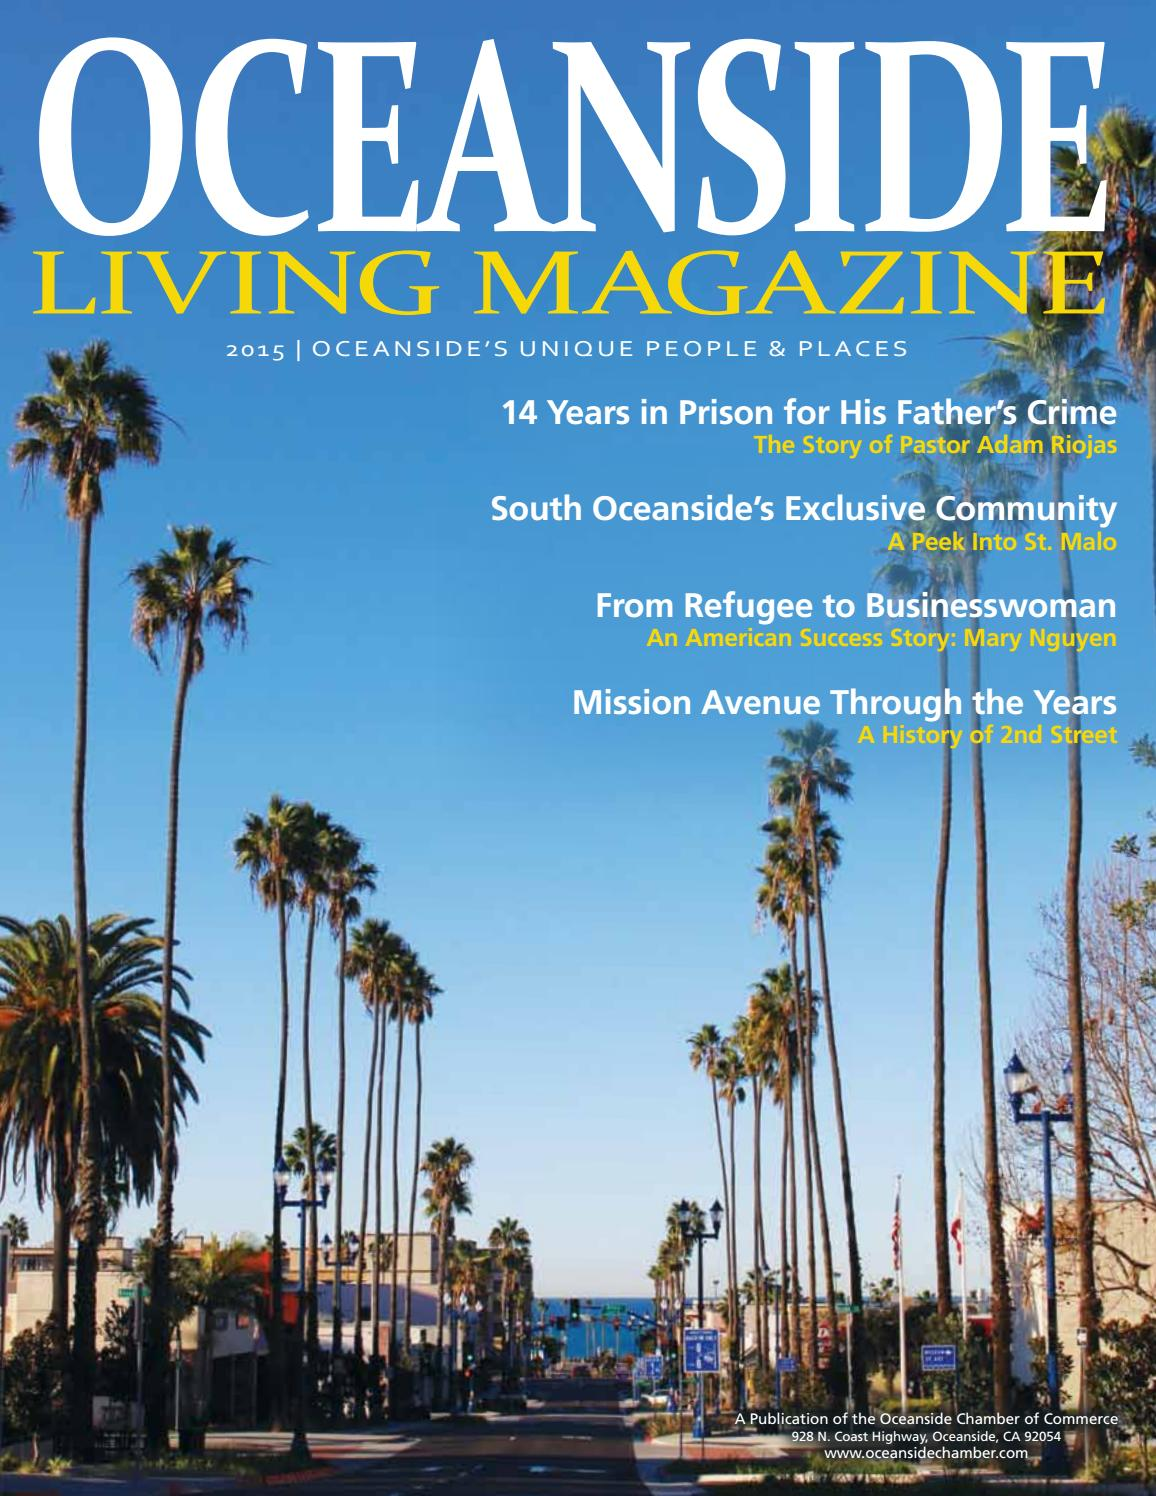 Best of OCEANSIDE LIVING MAGAZINE 2015 Oceanside s Unique People and